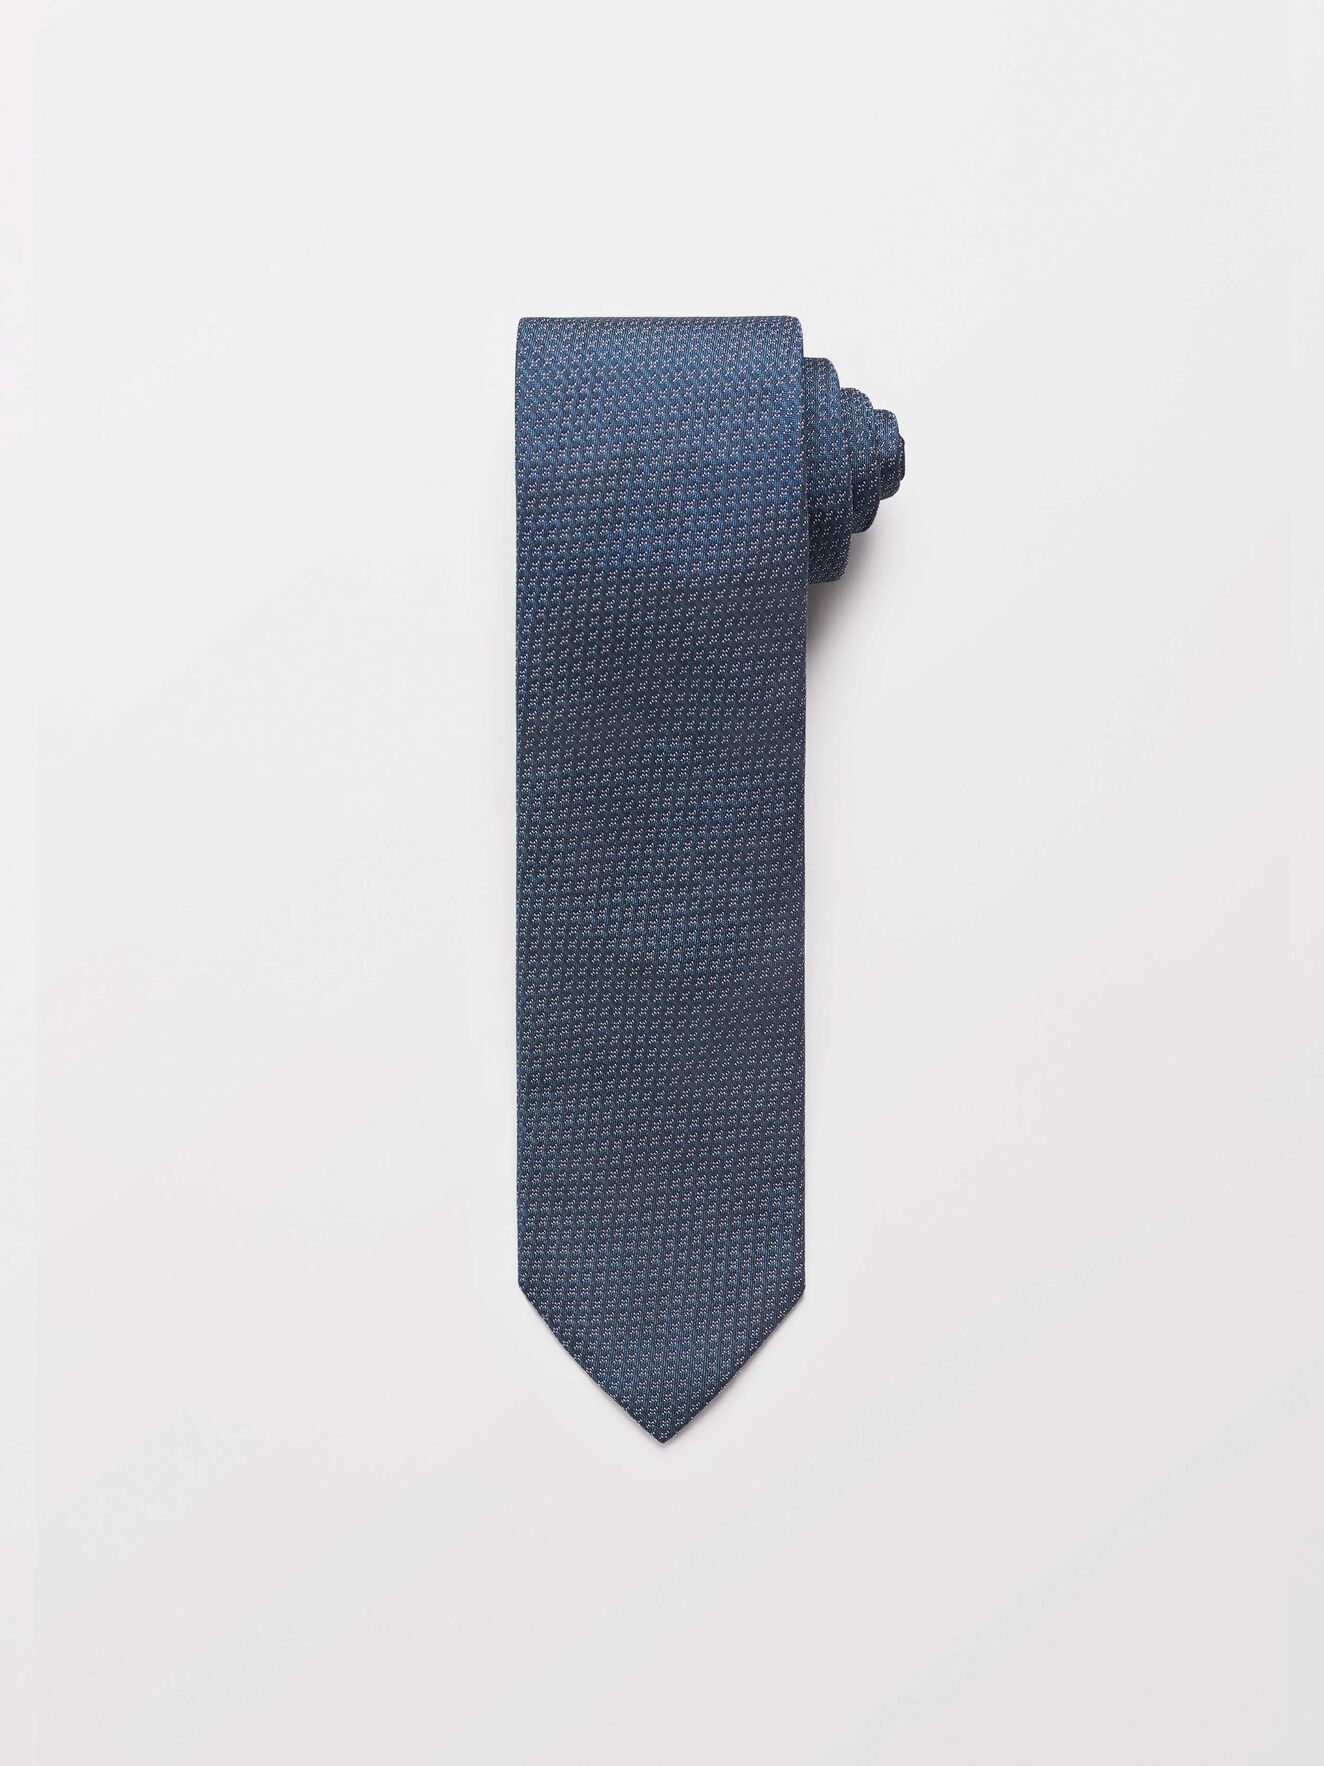 Tou 5 Tie in Deep Ocean Blue from Tiger of Sweden